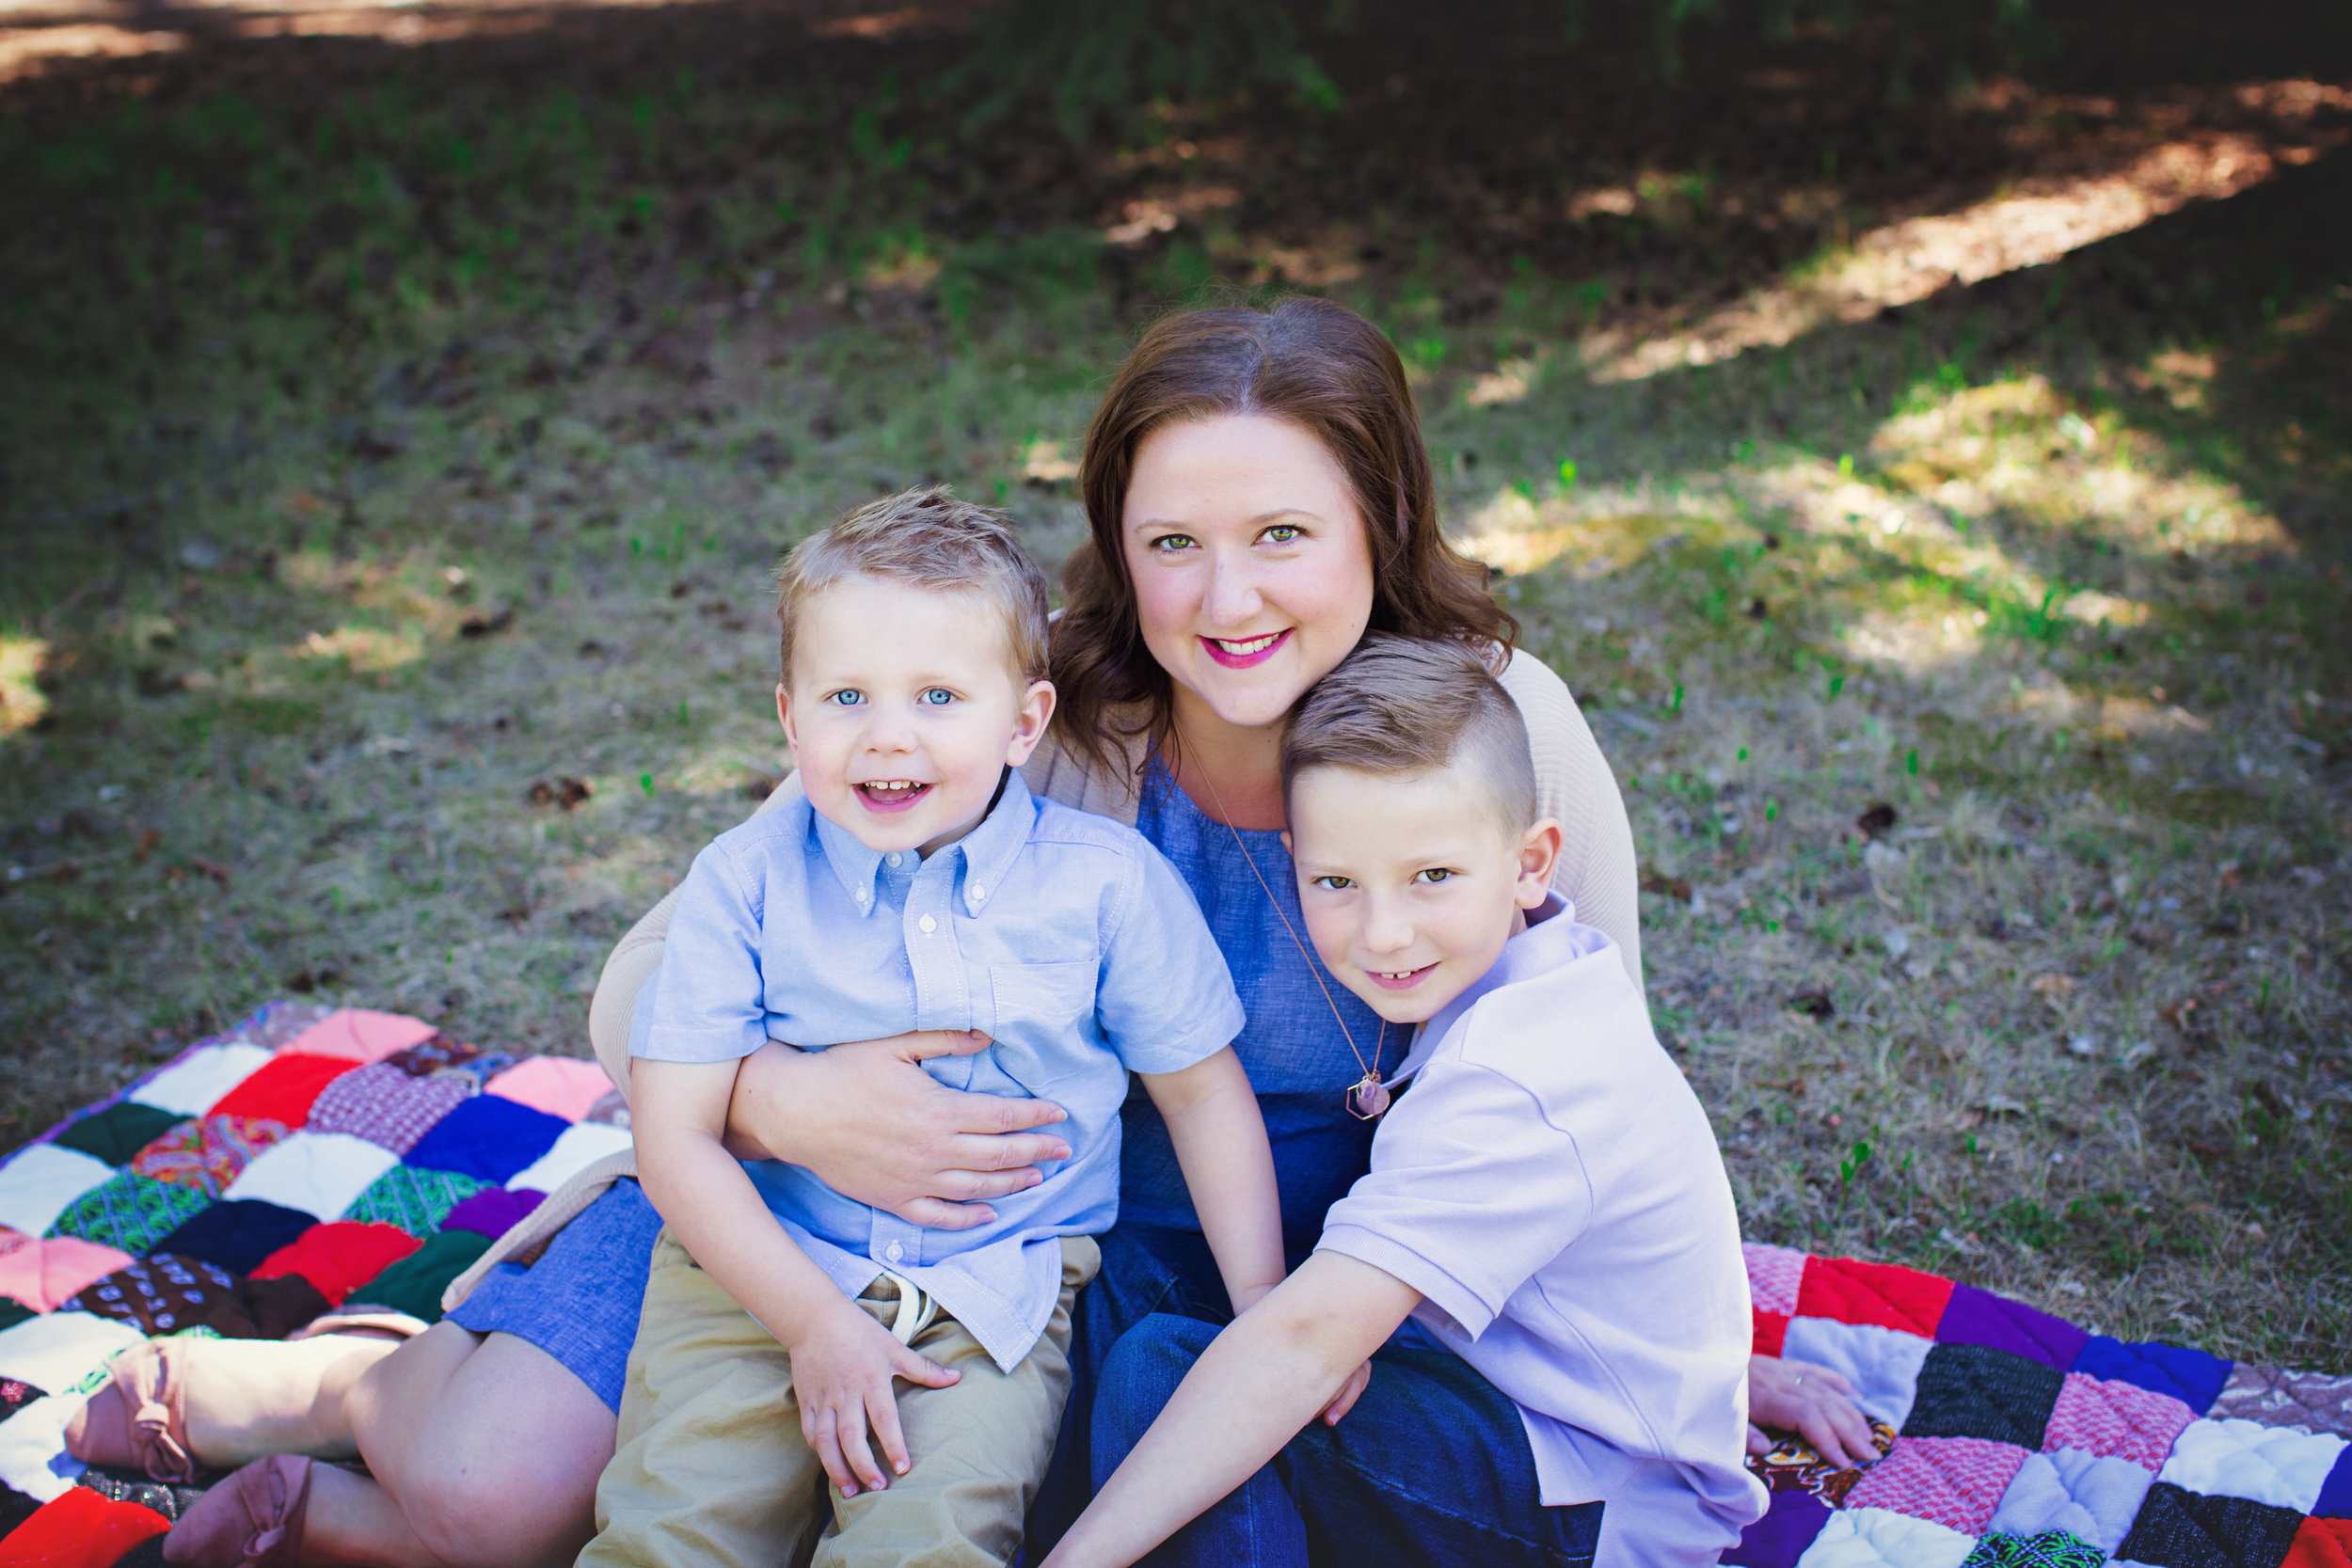 Mom and her 2 sons sitting on a blanket at the park. Calgary Family Photographer. Milashka Photography